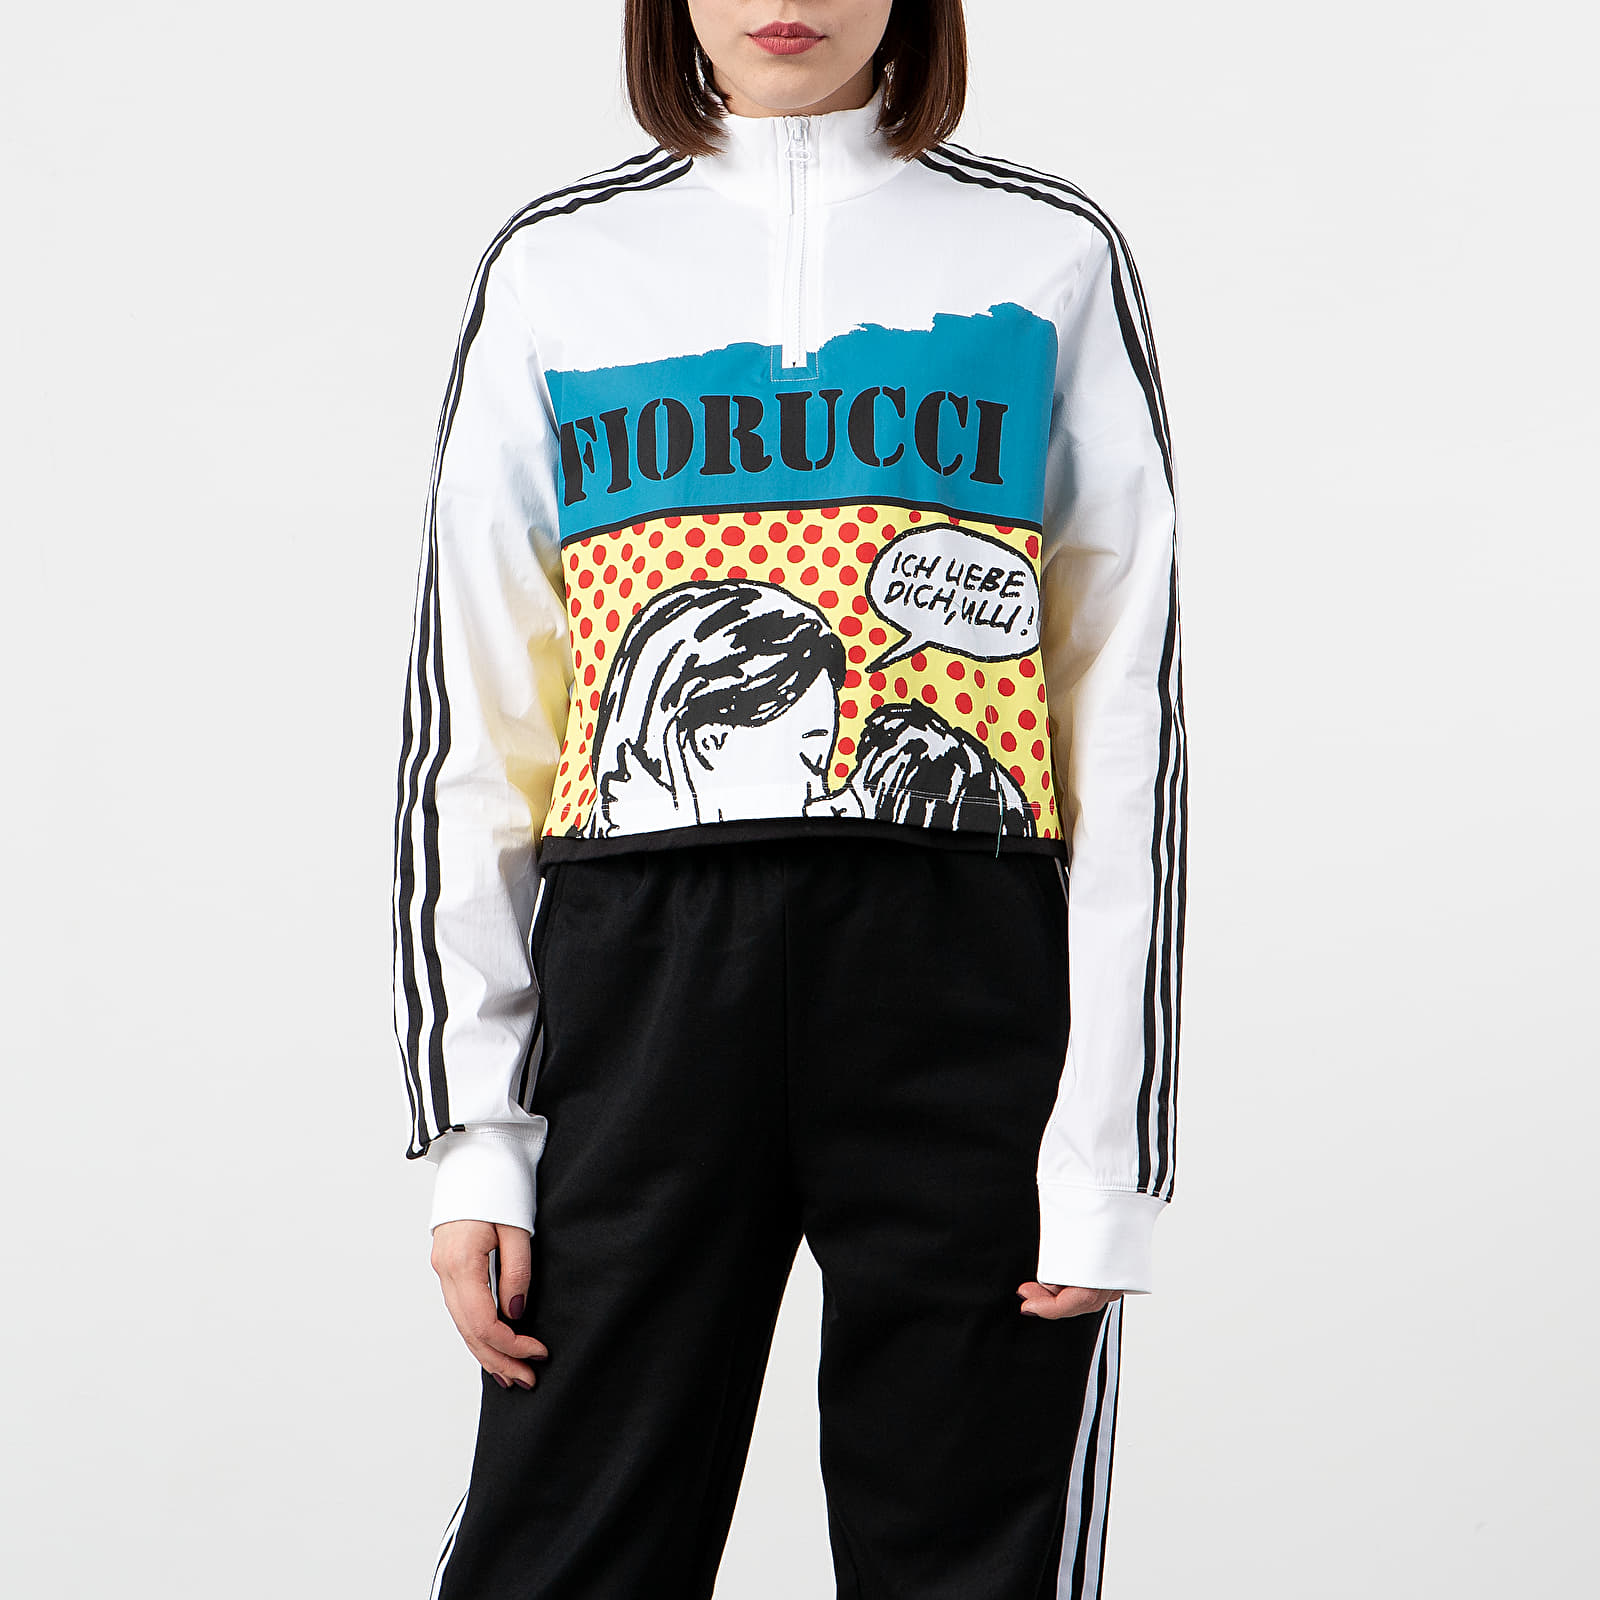 adidas by Fiorucci Graphic Longsleeve Tee